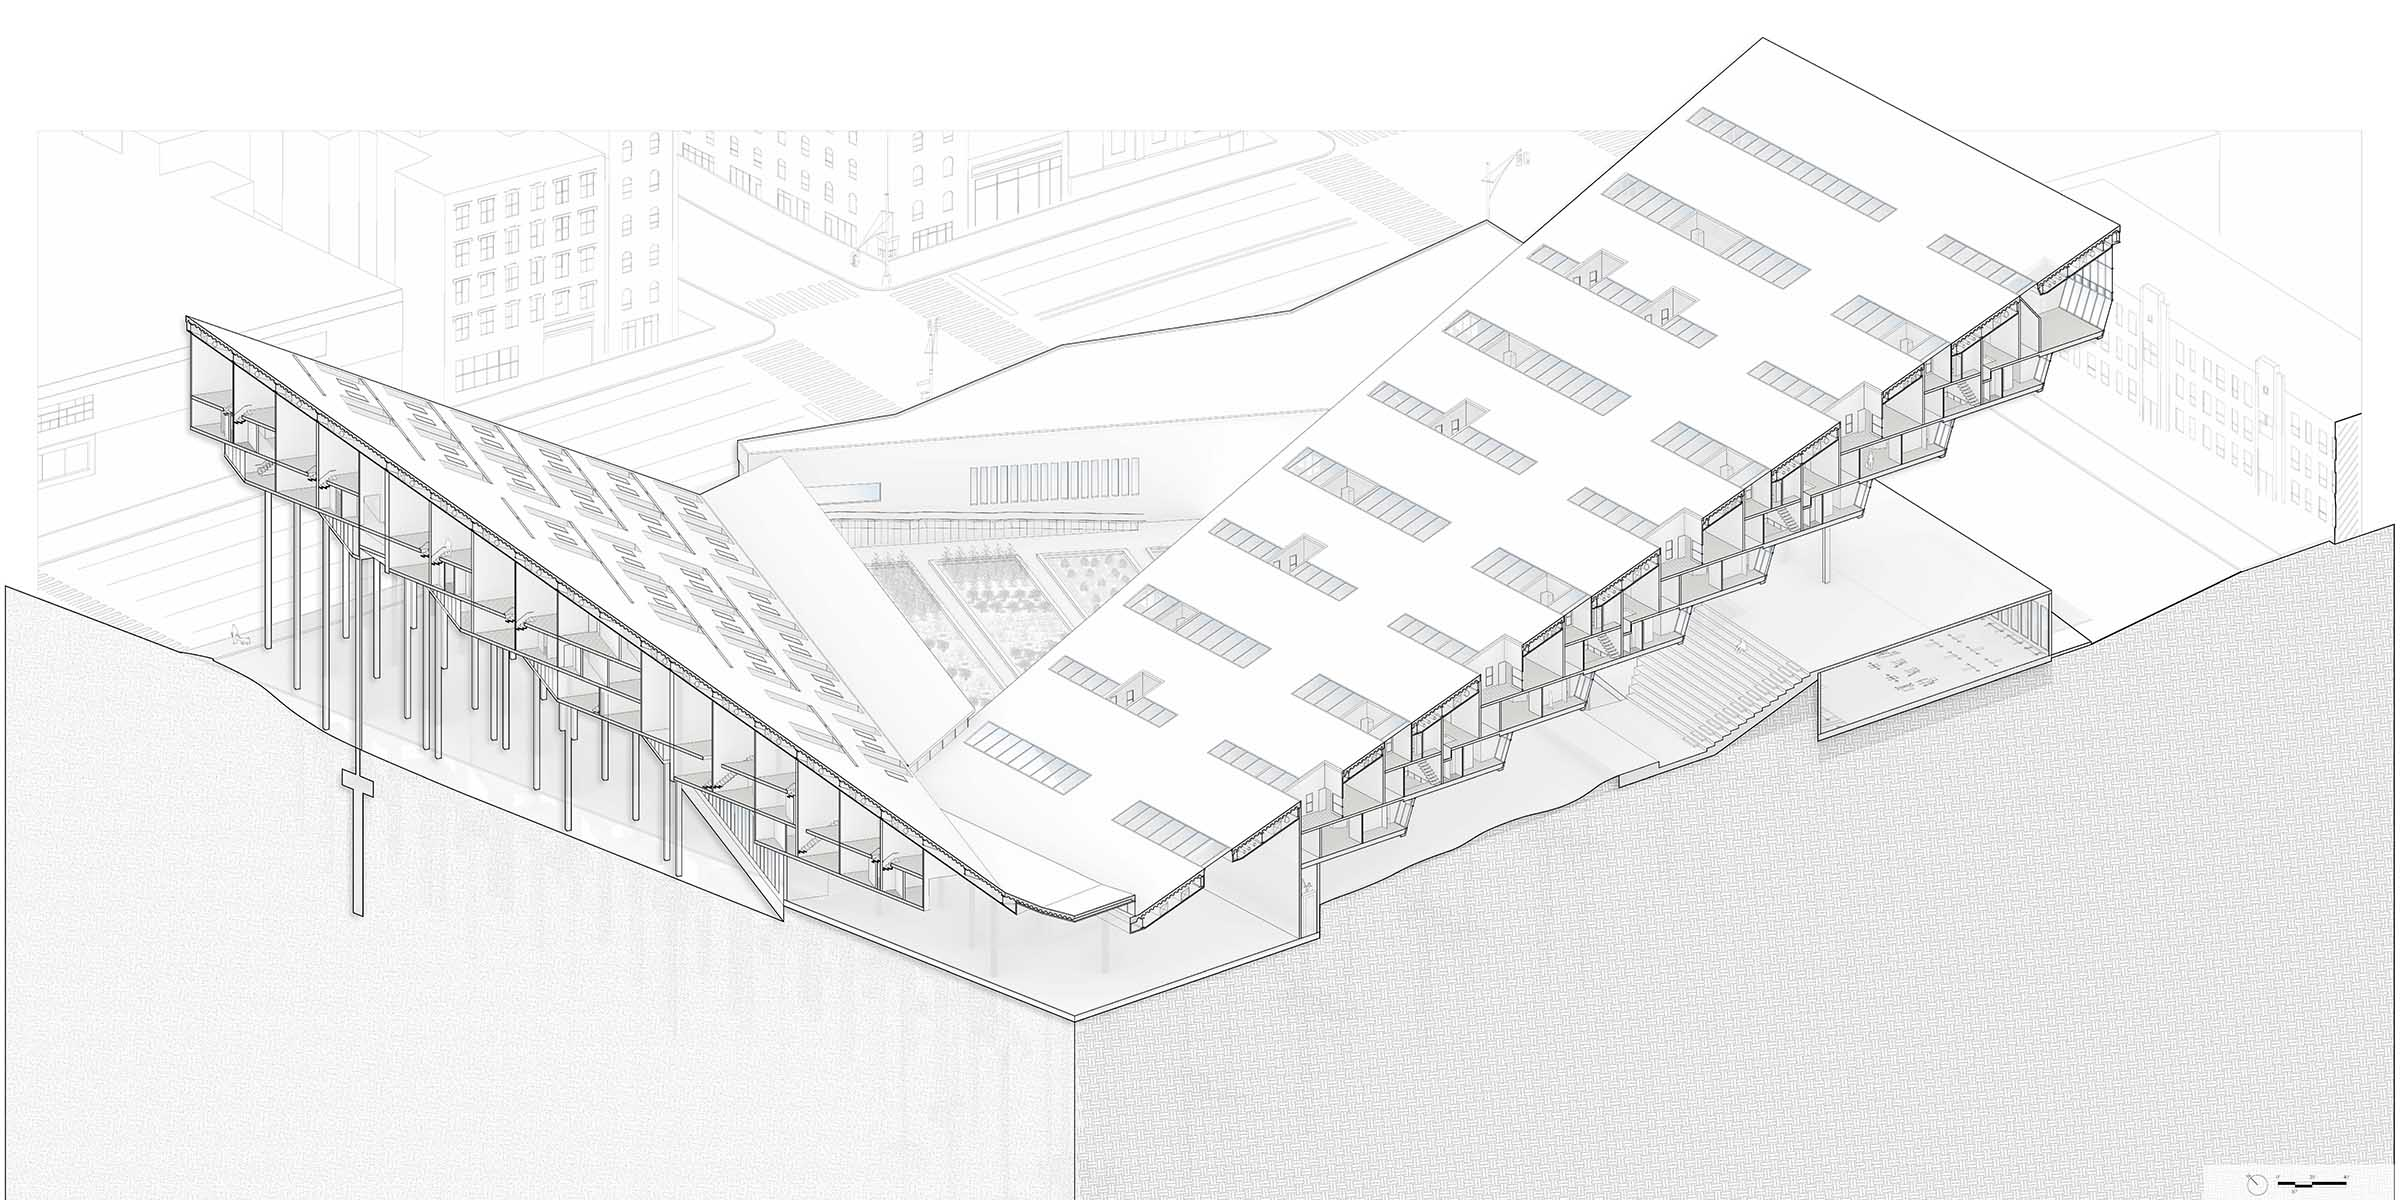 Projected Living - GSAPP Core III Studio - Housing - Bronx, NYcurating visual queues in urban housing forms2018